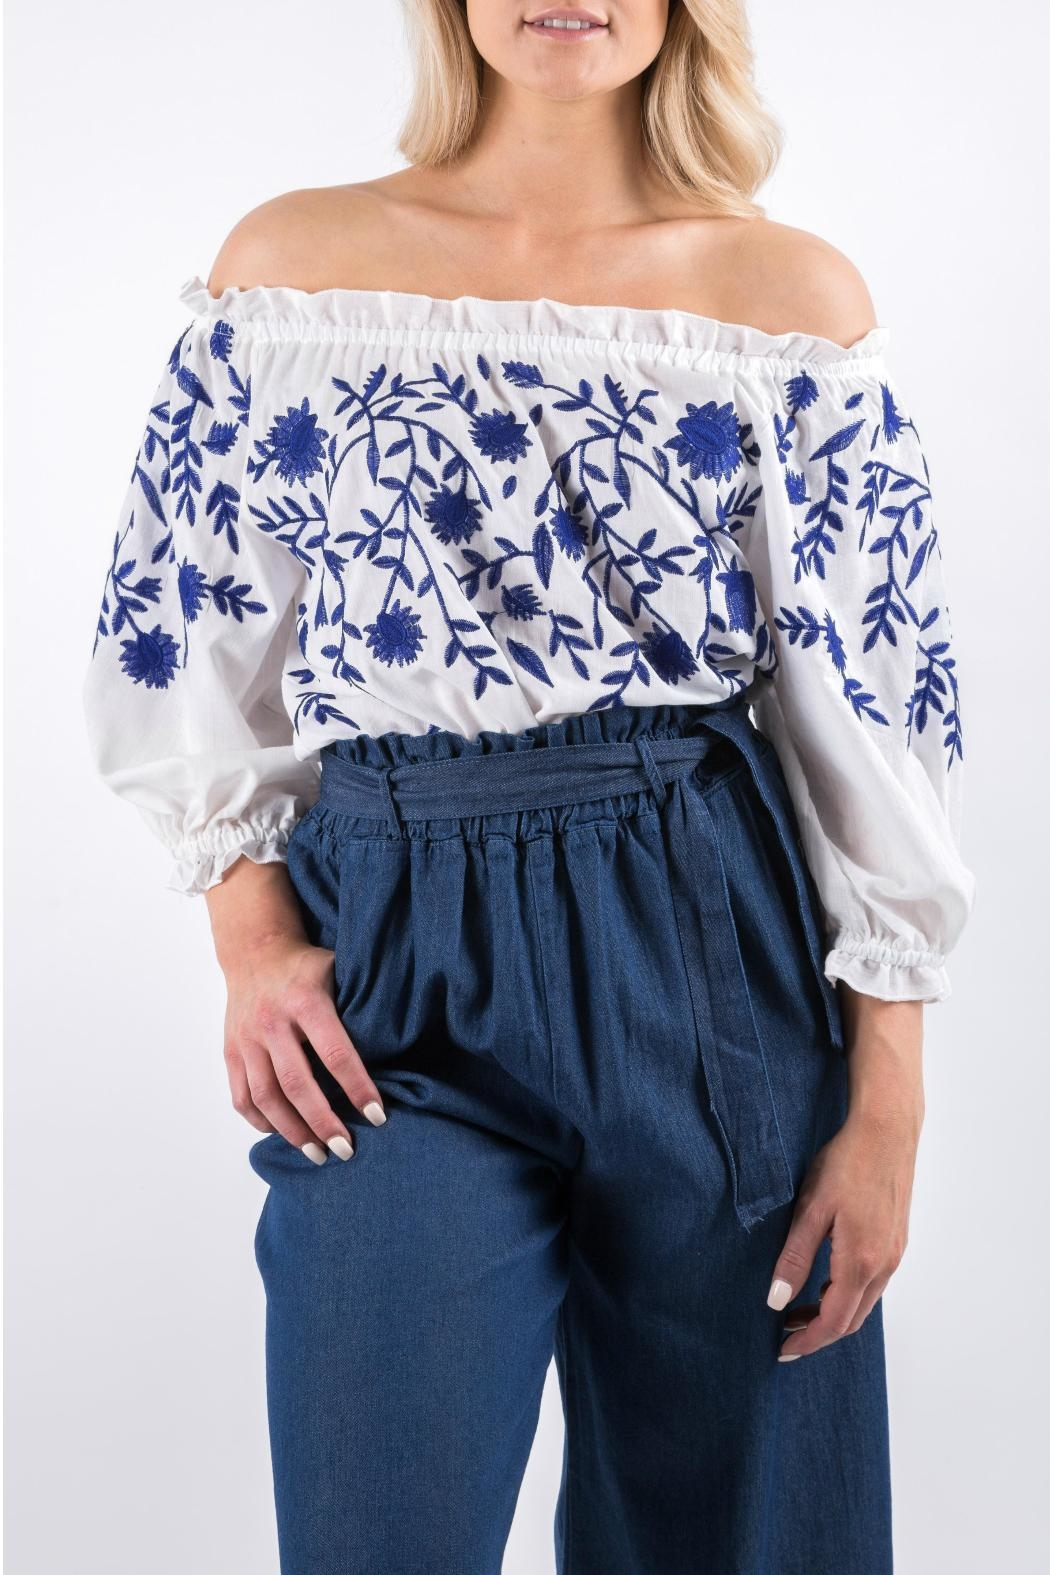 Yuki Tokyo Evelyn Embroidered Top - Front Full Image